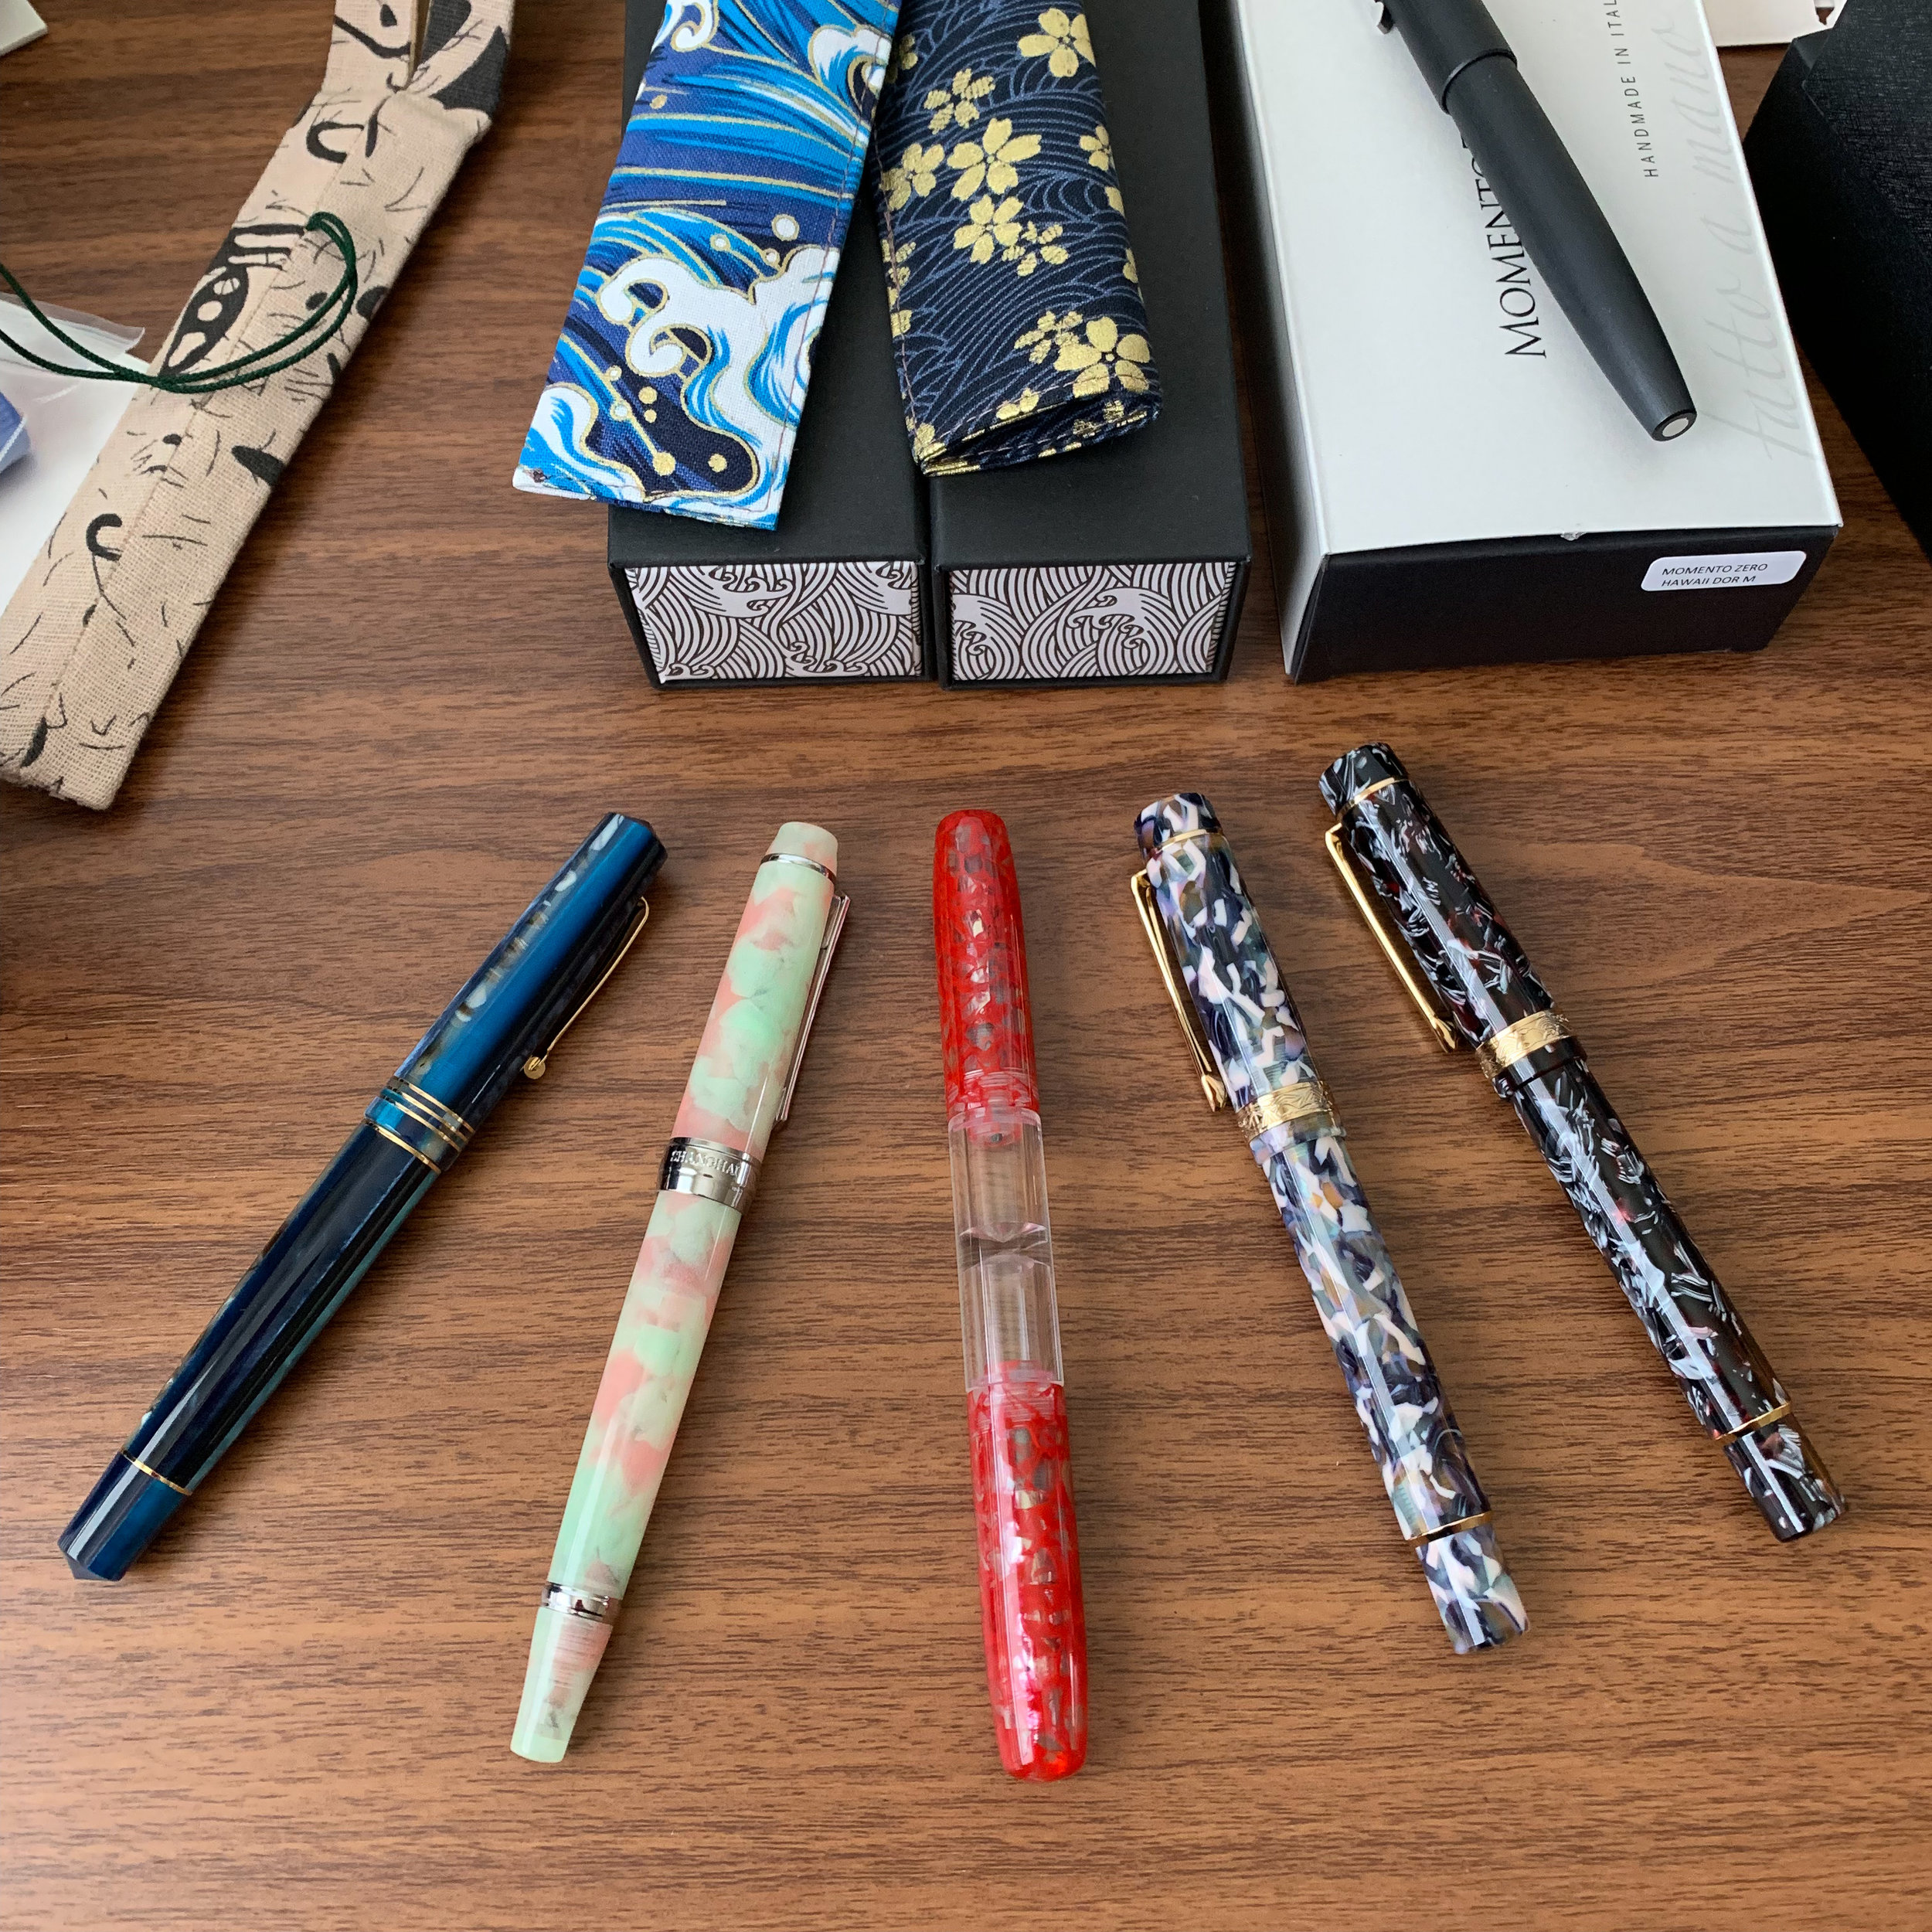 I FINALLY get to ink up some of last week's mail call! I went with some of the three PenBBS pens on the left.